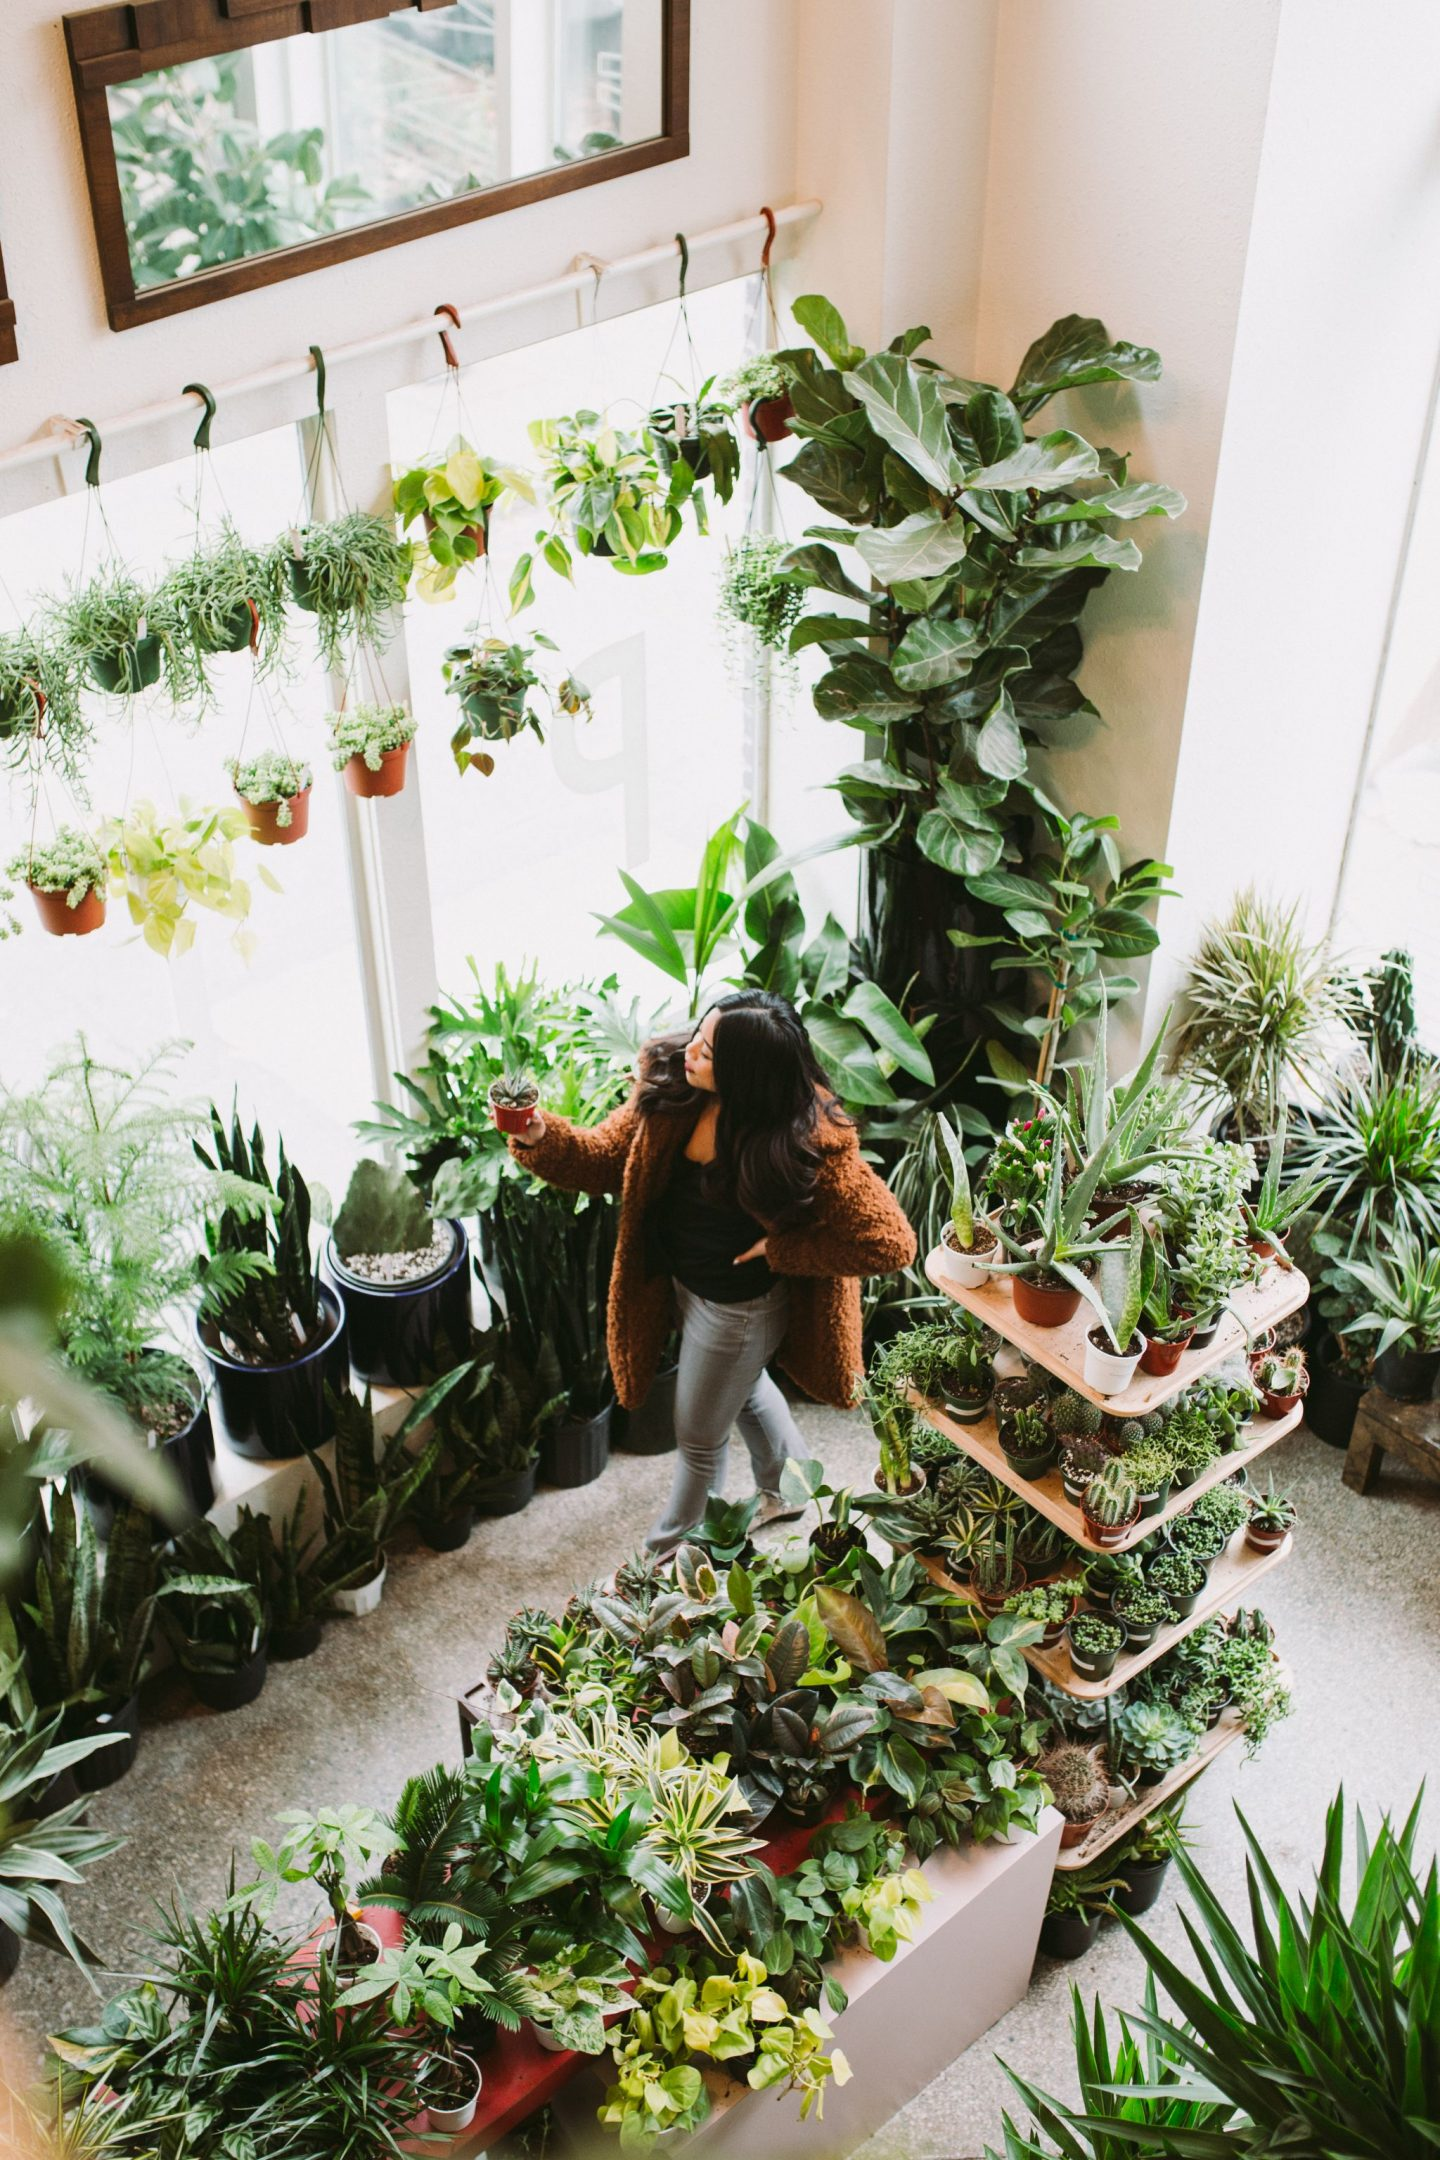 Plant Shop Seattle – Homestead Plant Shop Seattle – the plant shop seattle – plant shop central district – plant shops in seattle – where to buy plants in seattle – plant shop inspo – plant inspiration – plant décor – plants for apartments – plants for home